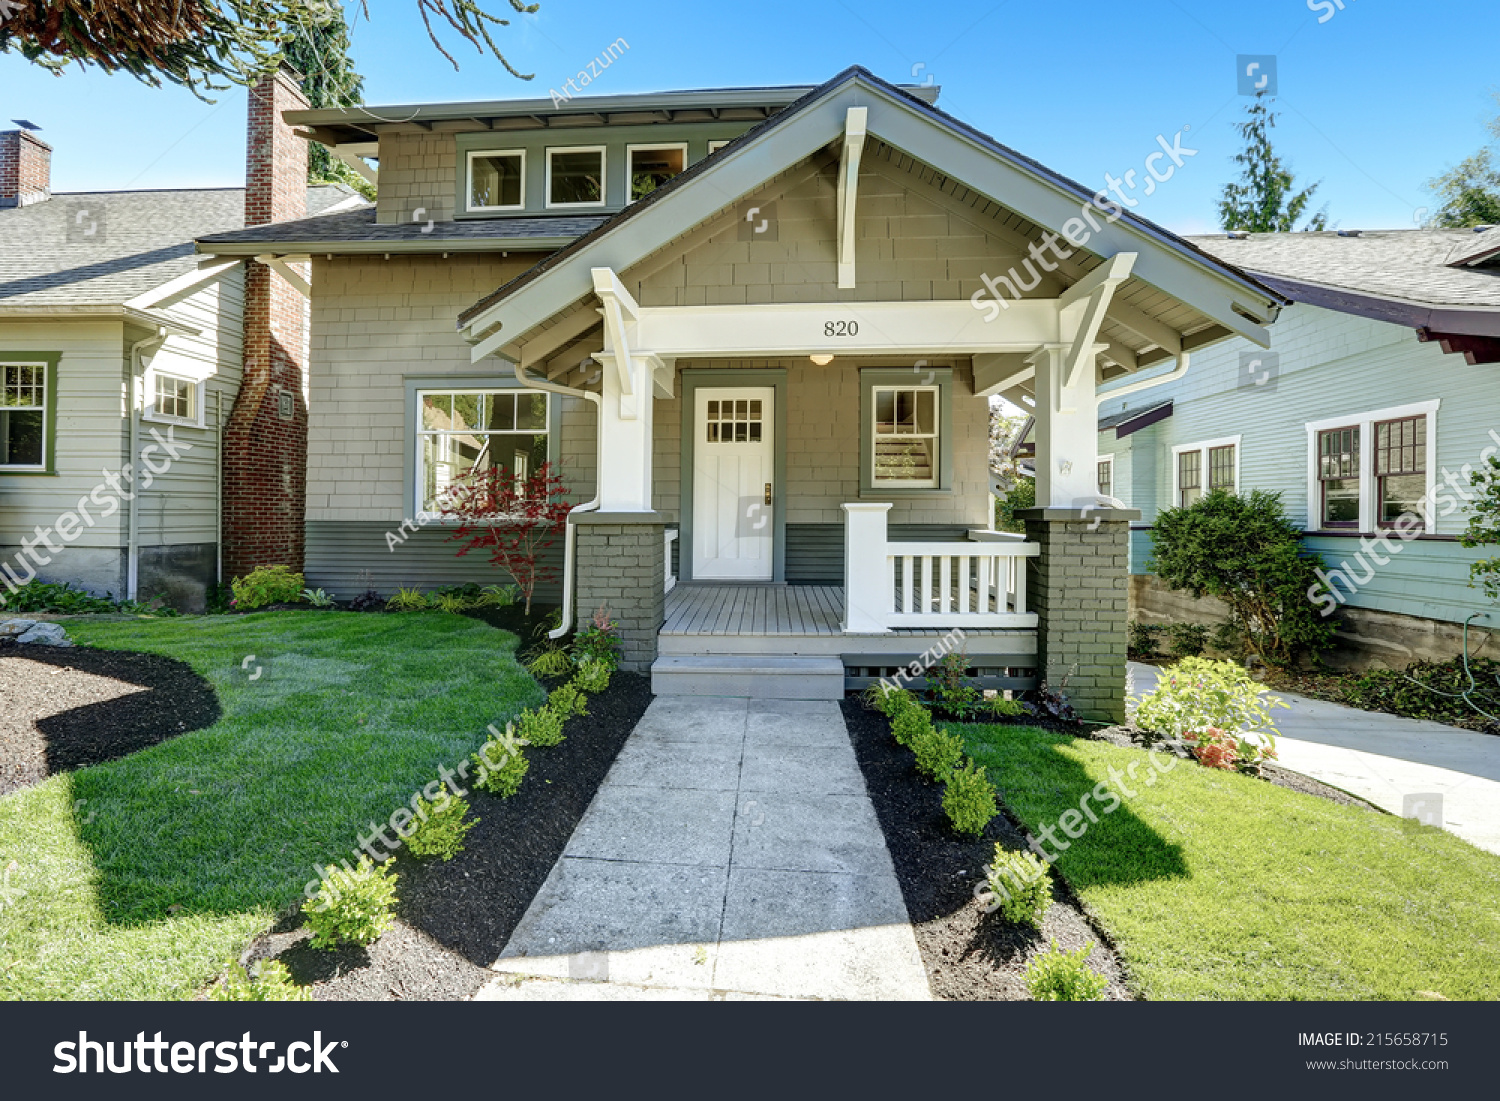 Charming House Entrance Porch With White Wooden Door And White Railings. Front Yard  Landscape With Walkway